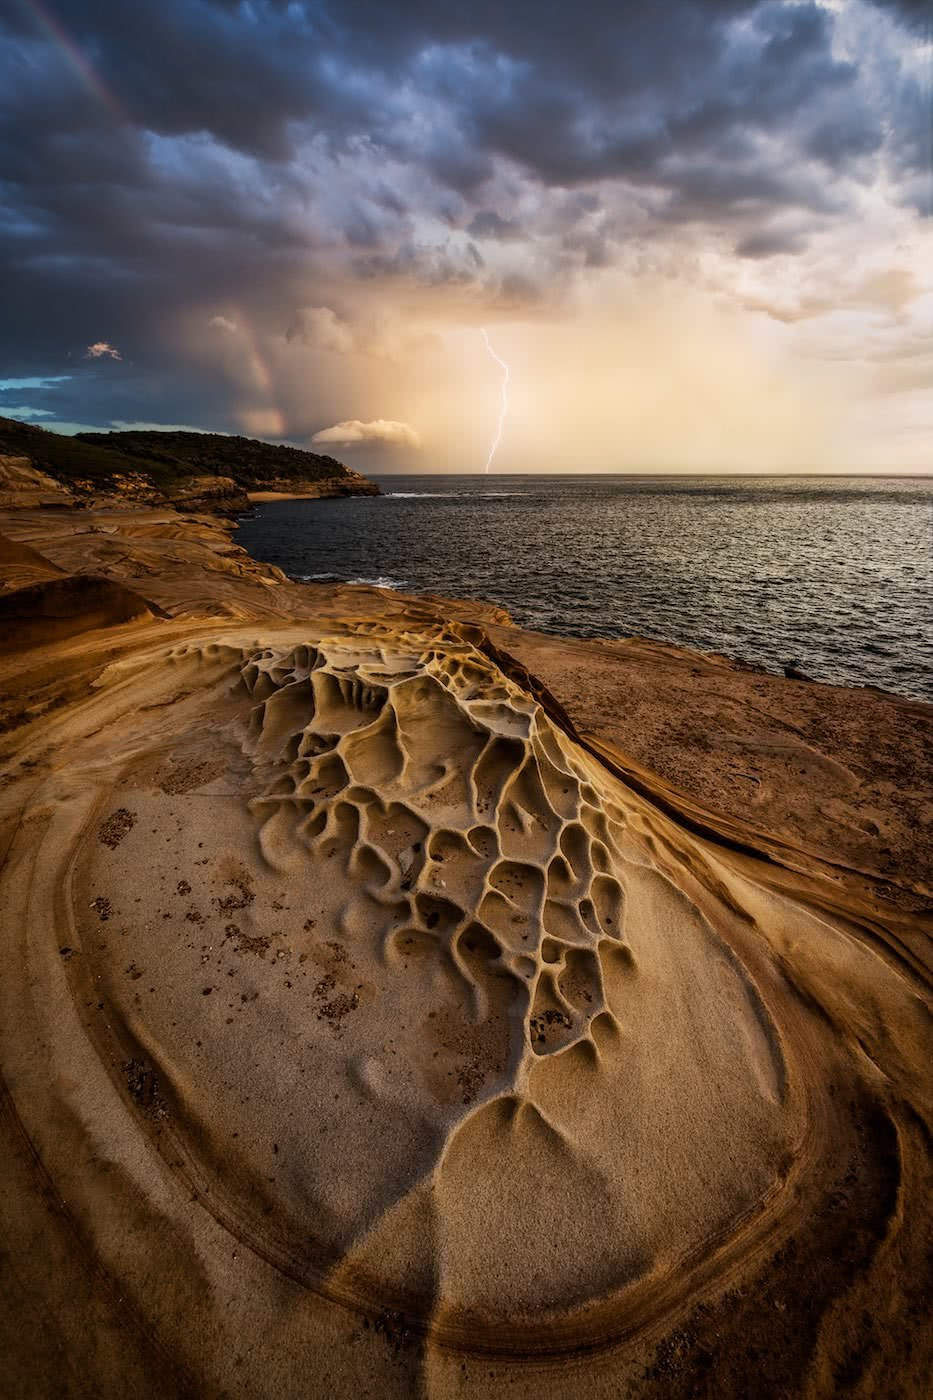 A Hiker's Guide To Lightning Safety, Xavier Anderson, photo Jake Anderson, Putty beach Storm, sandstone, rock formations, ocean, sky